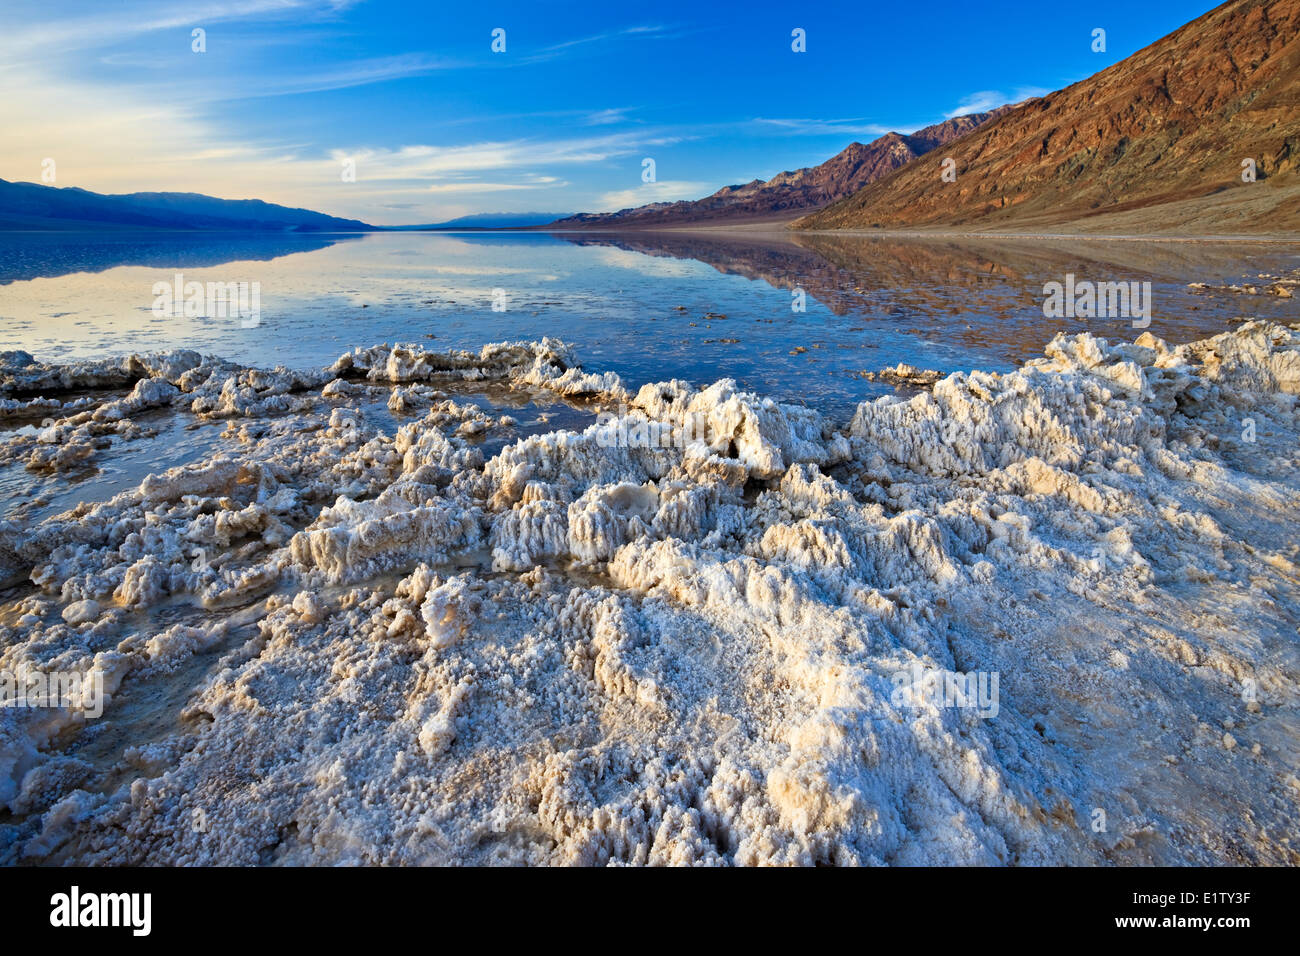 After heavy rain, water filled Badwater Basin, Badwater Basin, Death Valley National Park, California, USA - Stock Image